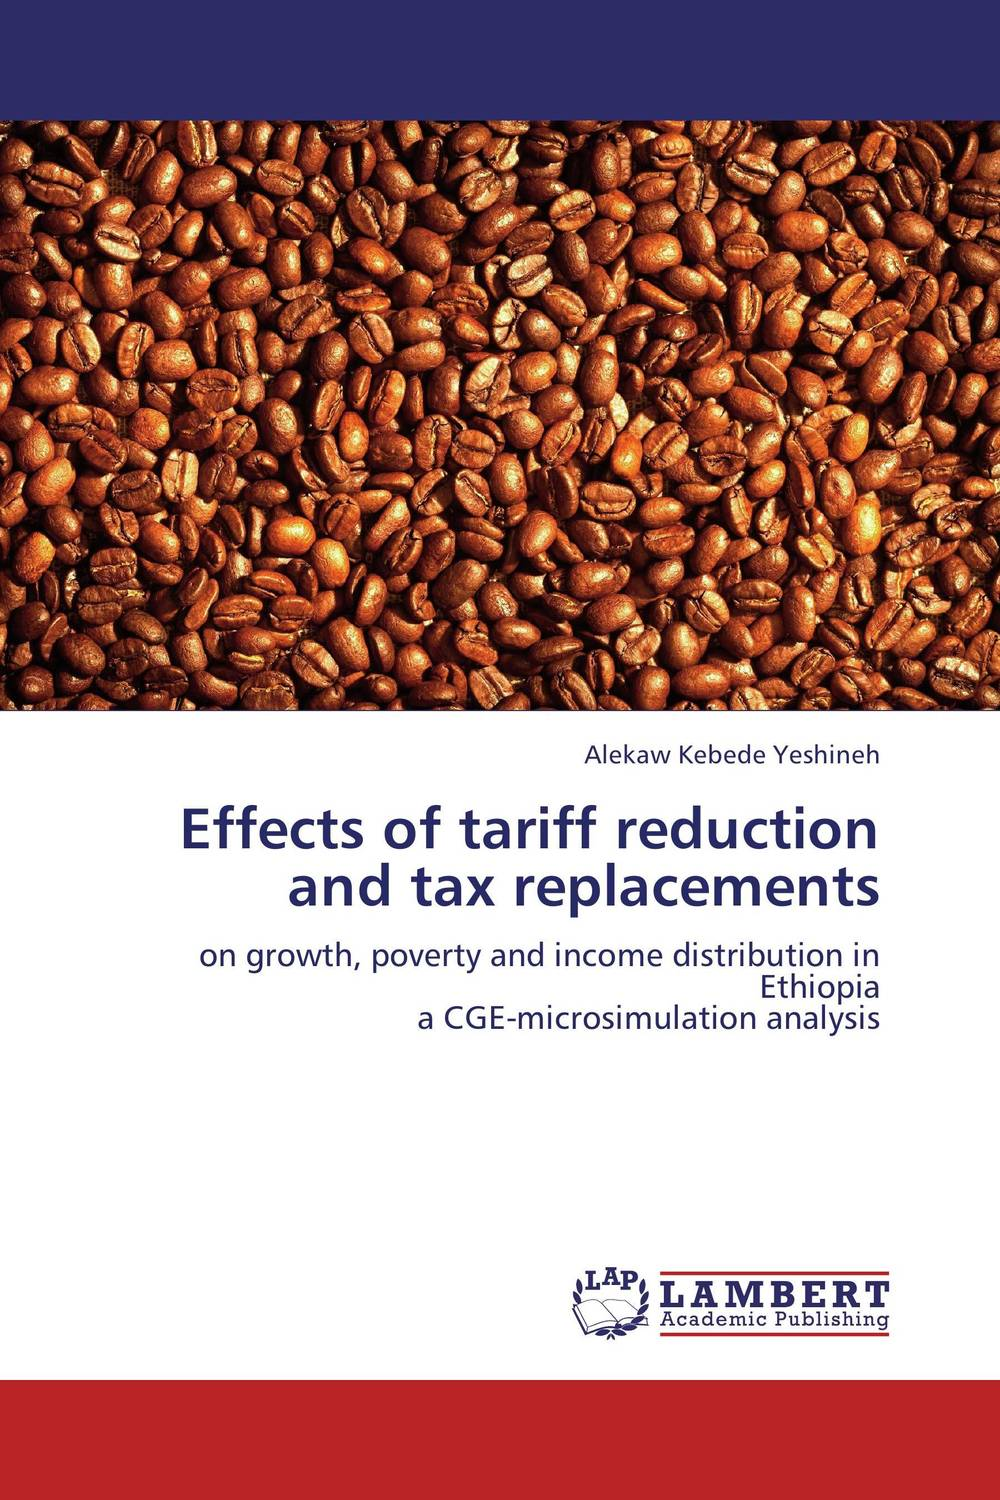 Effects of tariff reduction and tax replacements the effect of securities regulation and corporate tax